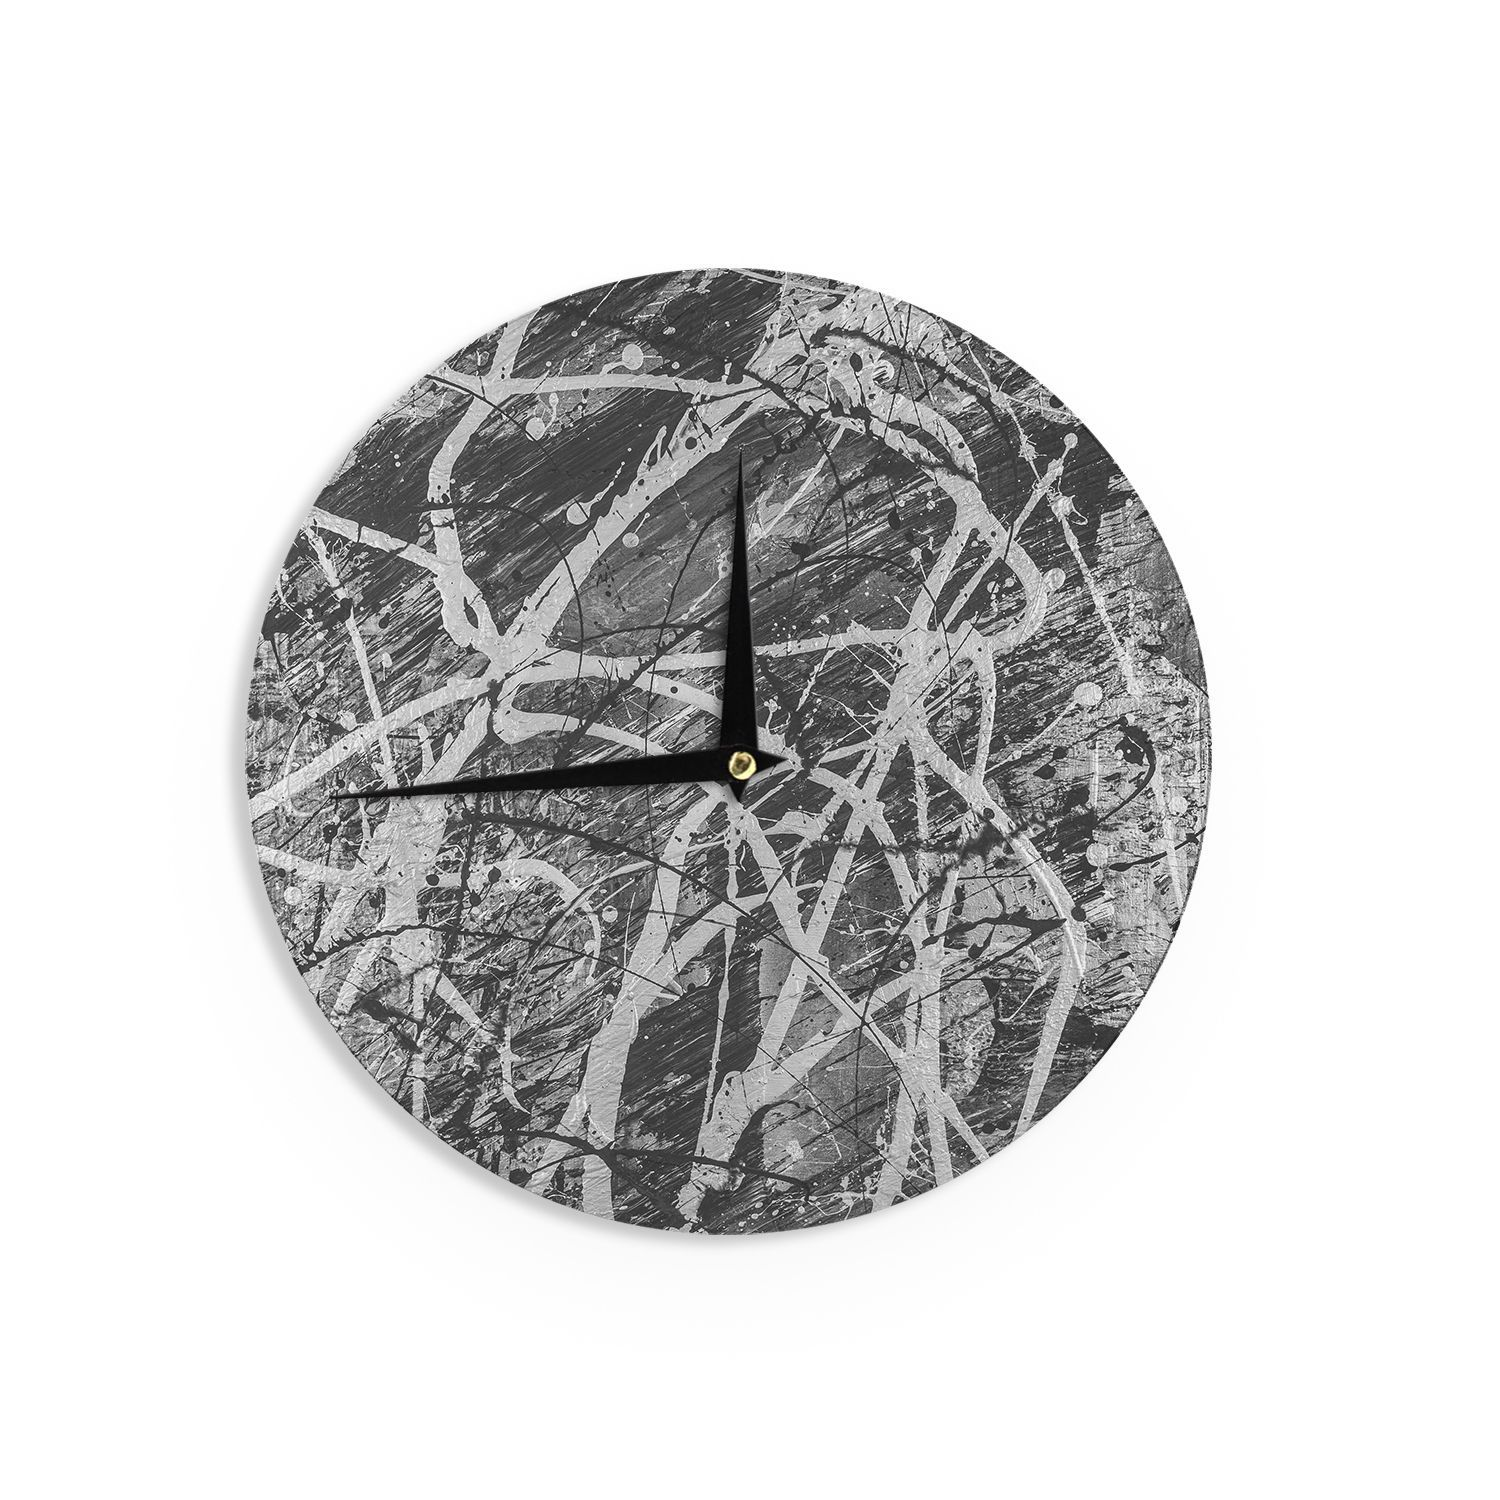 Kess inhousebruce stanfield verness in grayscale white black kess inhousebruce stanfield verness in grayscale white black wall clock verness in grayscale size 12 wood amipublicfo Image collections